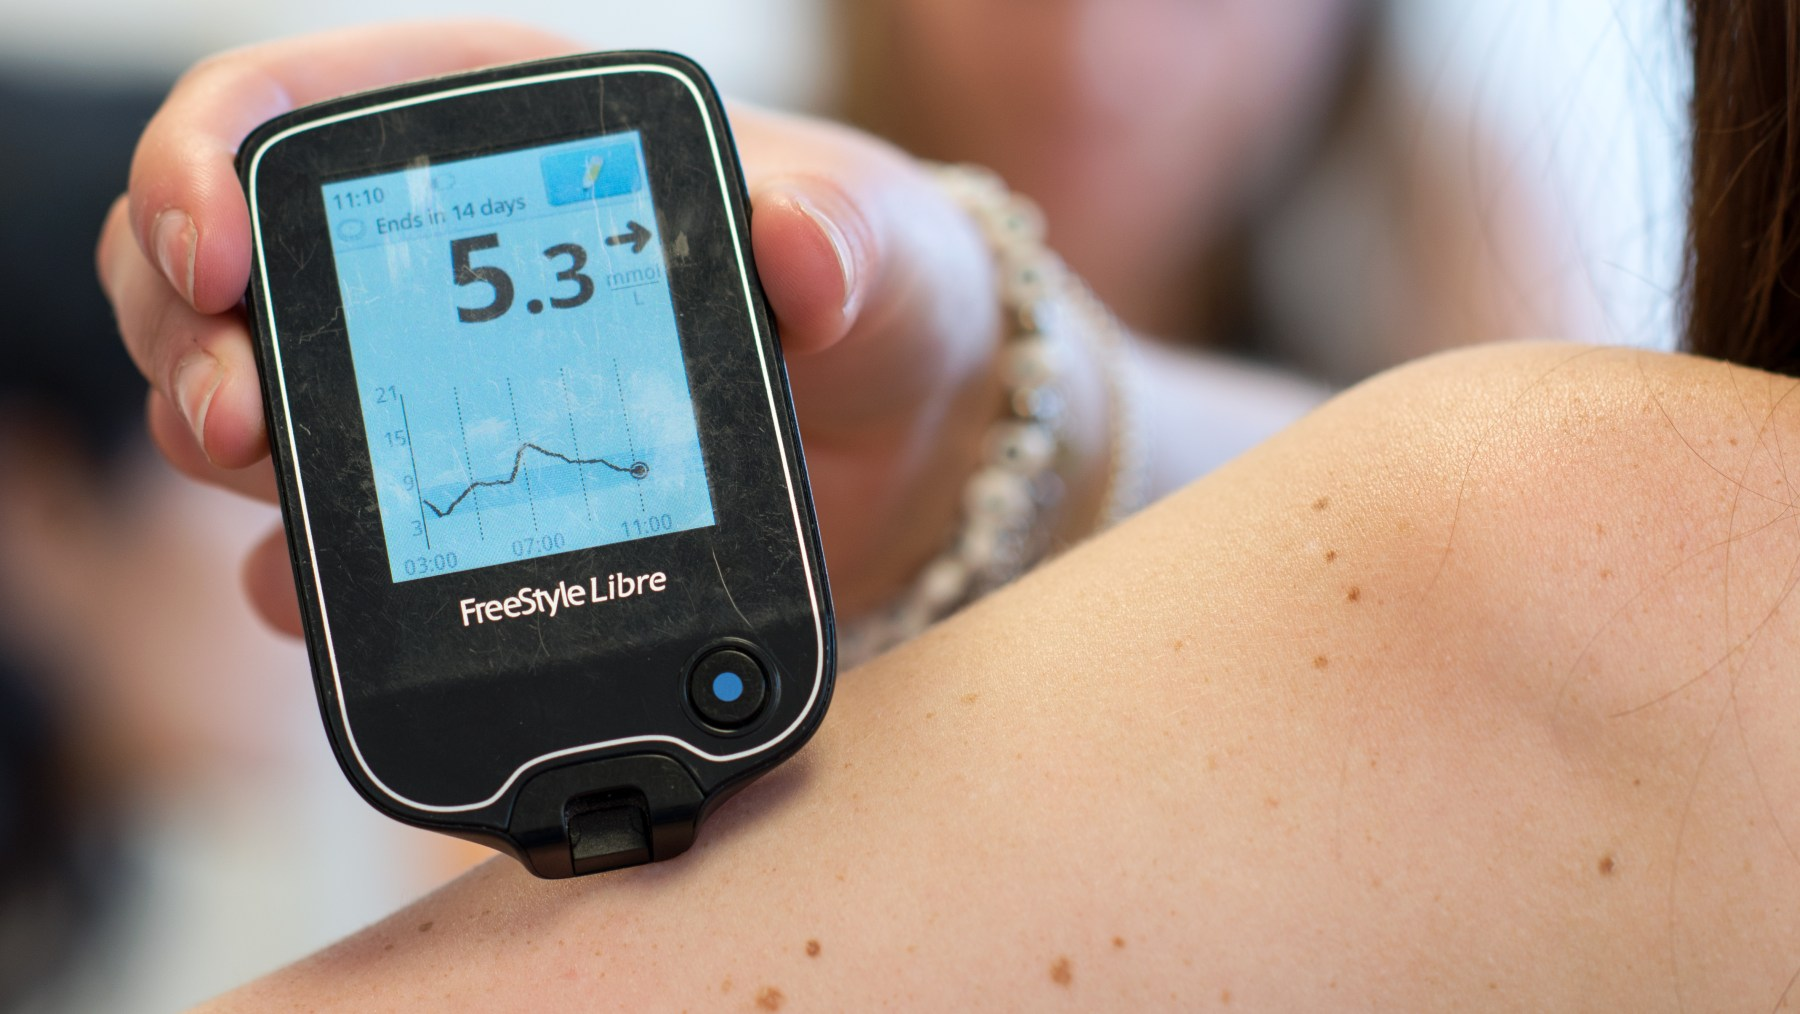 Abbott Freestyle Libre Flash Glucose Sensing Available On Nhs For Type 1 Diabetes From